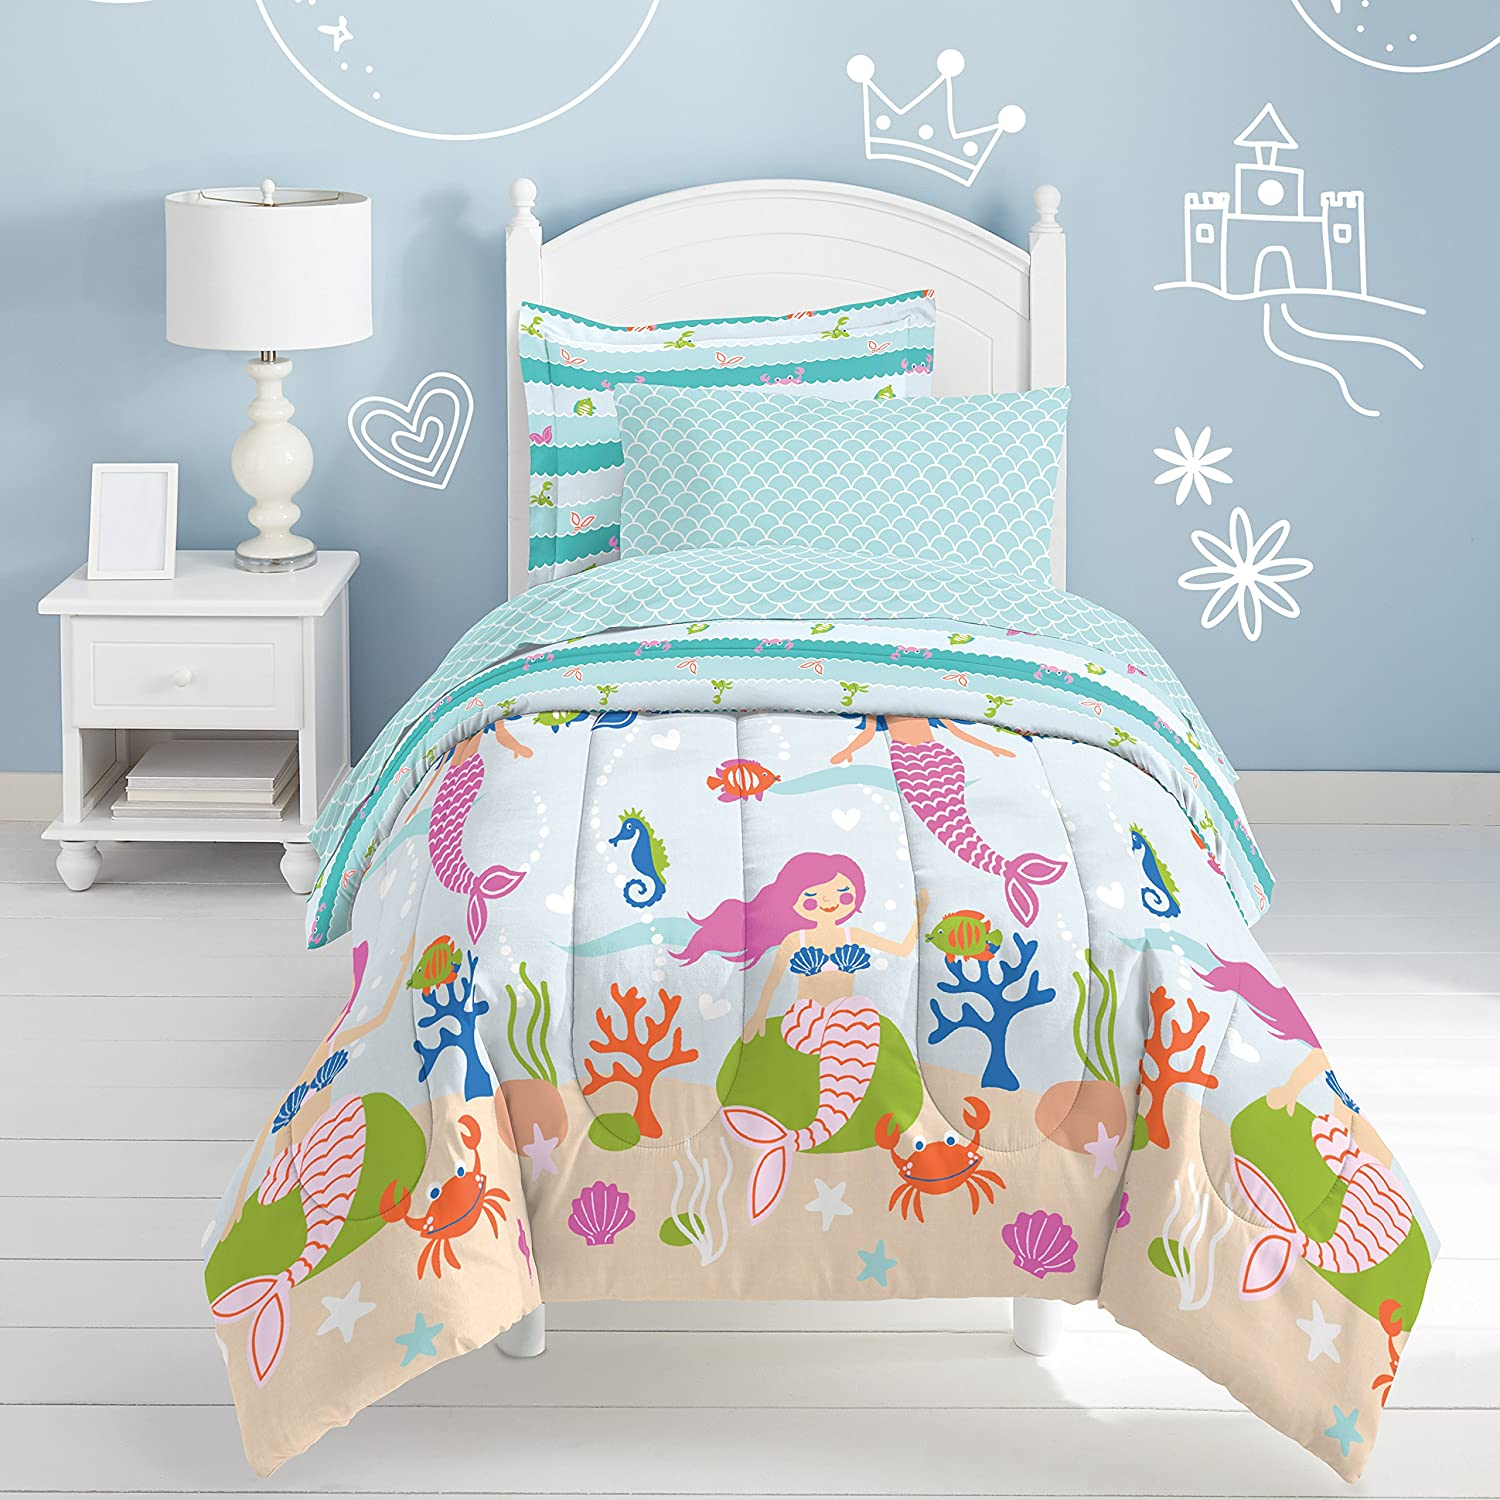 7 Piece Kids Girls Teal Blue Pink Mermaid Comforter Full Set, Swimming Mer Maid Bedding Under Water Sea Life Colorful Coral Crab Seashells Seahorse Trellis Pattern Ocean Themed, Microfiber Polyester